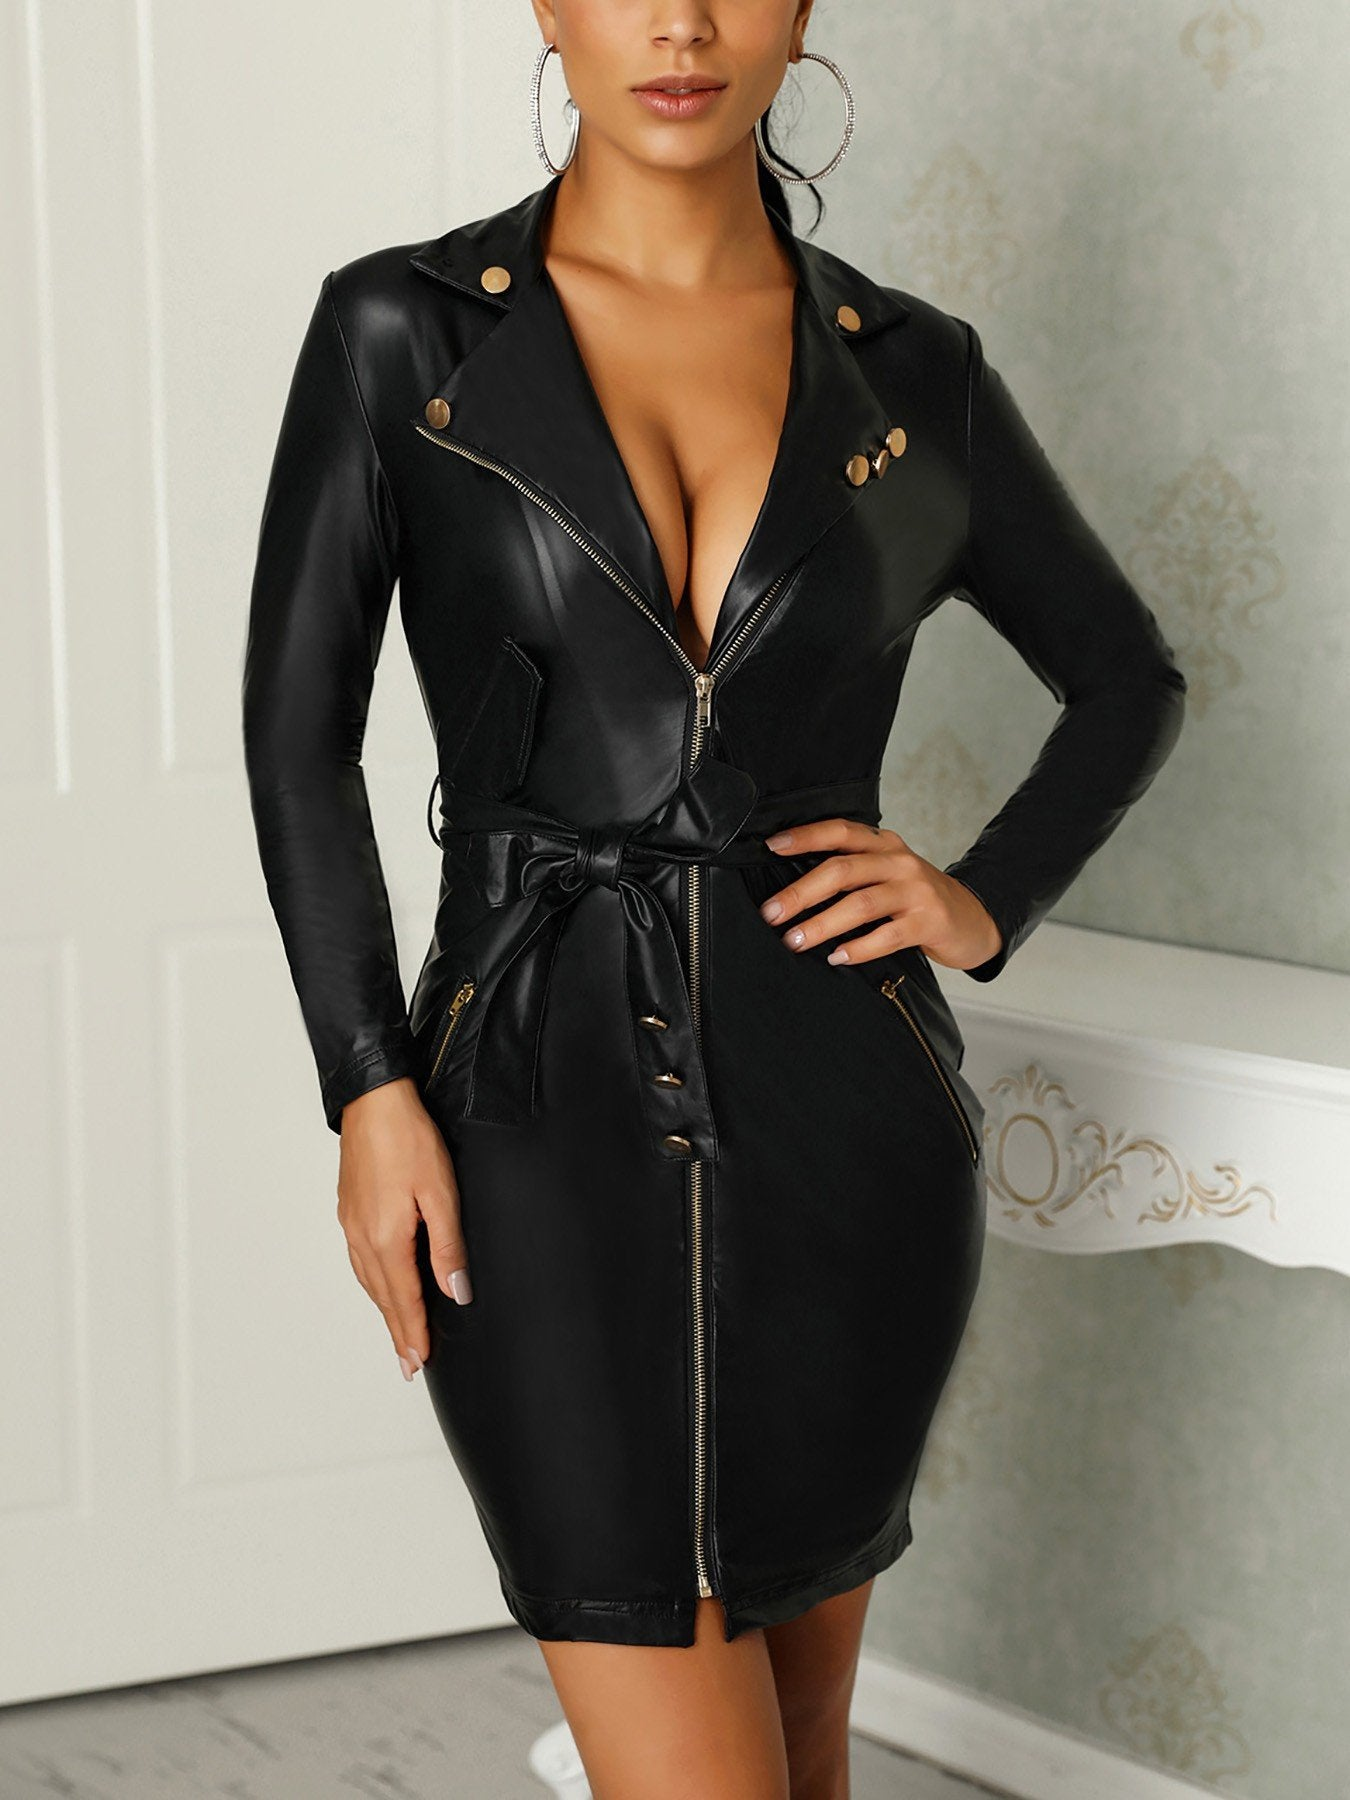 Cool Deep V Neck Package Hip Leather Dress - Asia-Peak